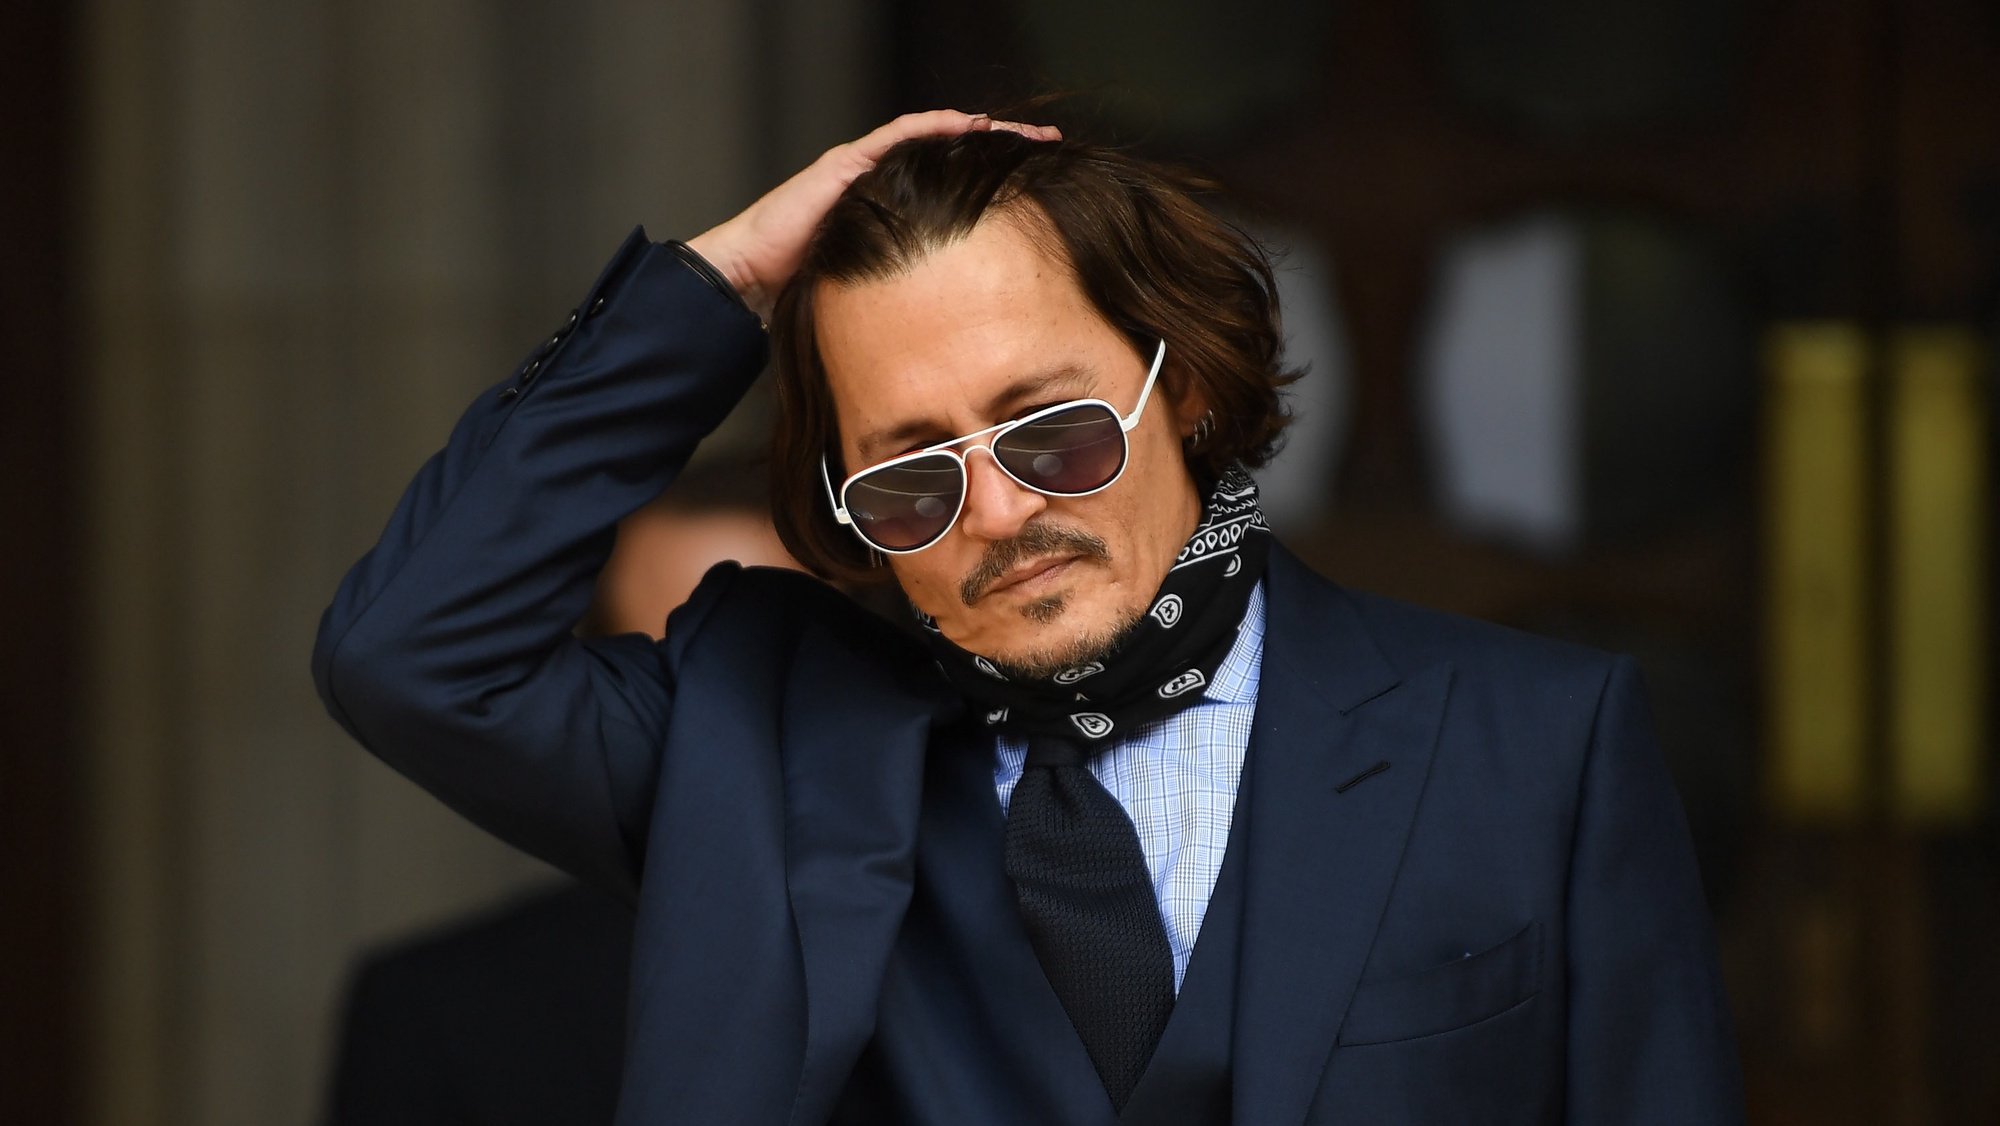 epa08792649 (FILE) - US actor Johnny Depp arrives at the Royal Courts of Justice in London, Britain, 14 July 2020 (reissued 02 November 2020). The UK High Court ruled against Depp in his libel trial against The Sun's newspaper publisher News Group Newspapers (NGN) over claims he abused his ex-wife, US actress Amber Heard, media reports state on 02 November 2020.  EPA/NEIL HALL *** Local Caption *** 56213511